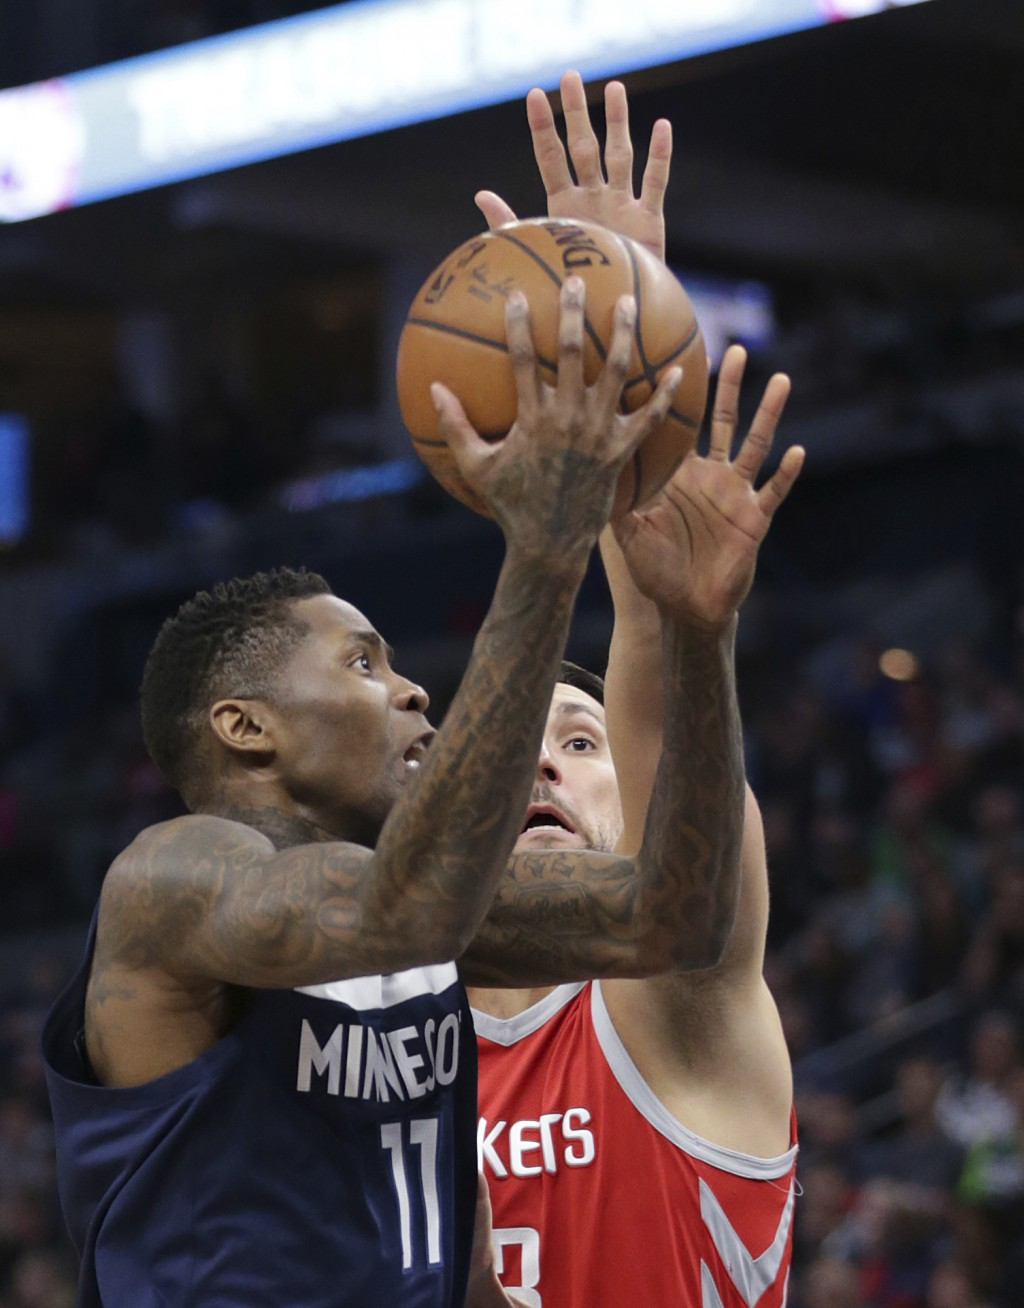 Minnesota Timberwolves guard Jamal Crawford (11) shoots over Houston Rockets forward Ryan Anderson (33) in the second quarter of an NBA basketball gam...